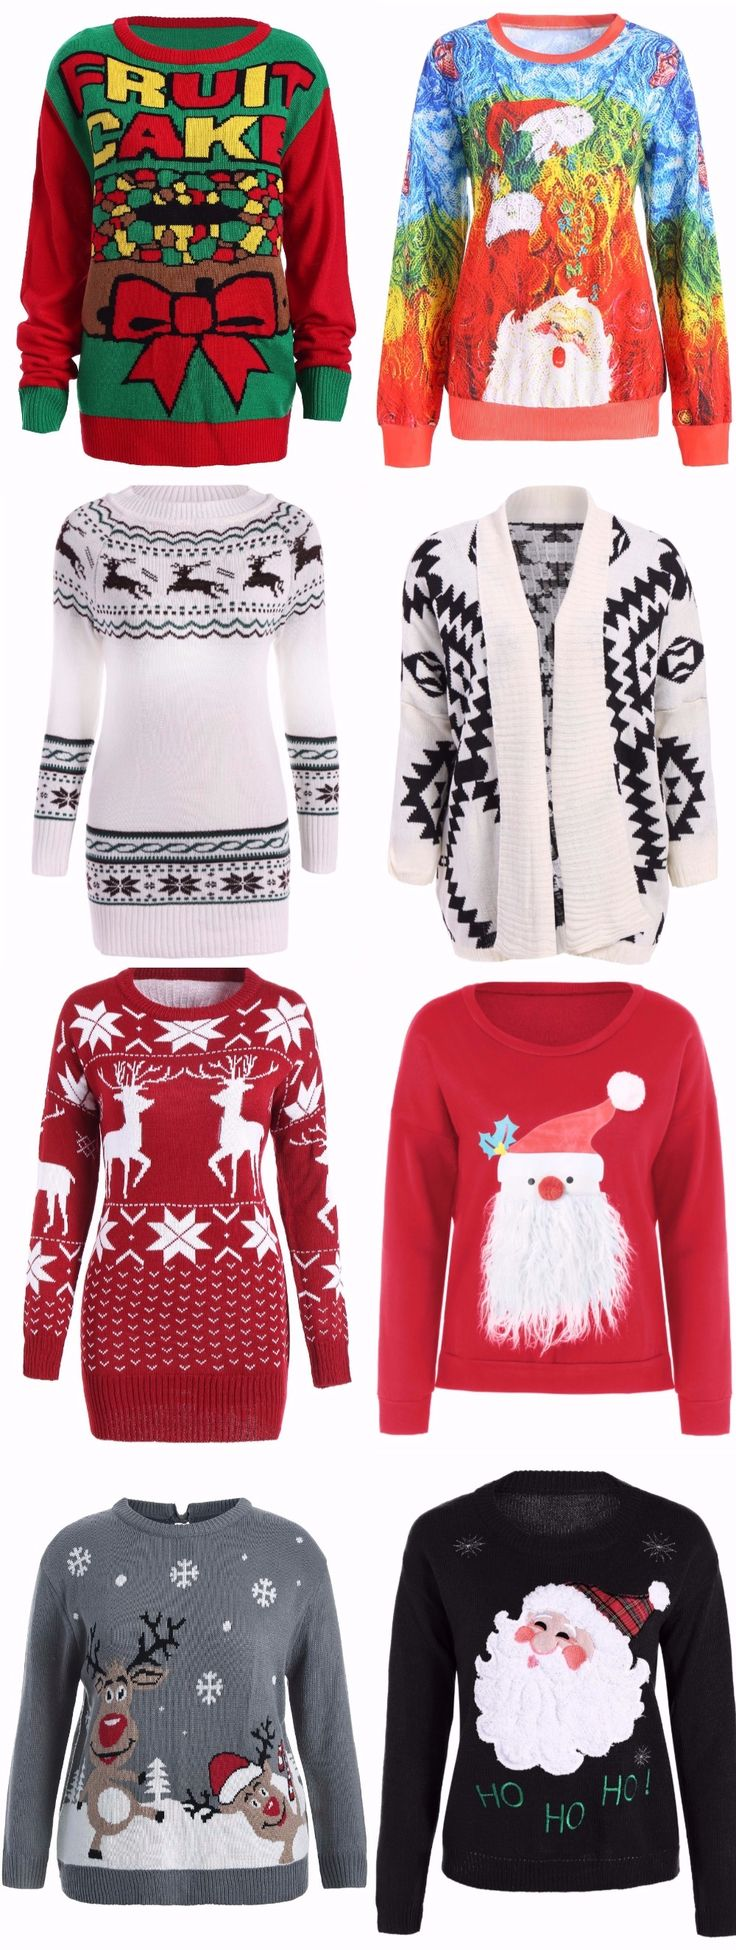 100+ Awesome Ugly Christmas Sweaters   Start at $10   Coupon Code: SDPS   DIY Christmas   DIY Sweaters   Merry Christmas   Happy New Year   Party Outfit   Sammydress.com